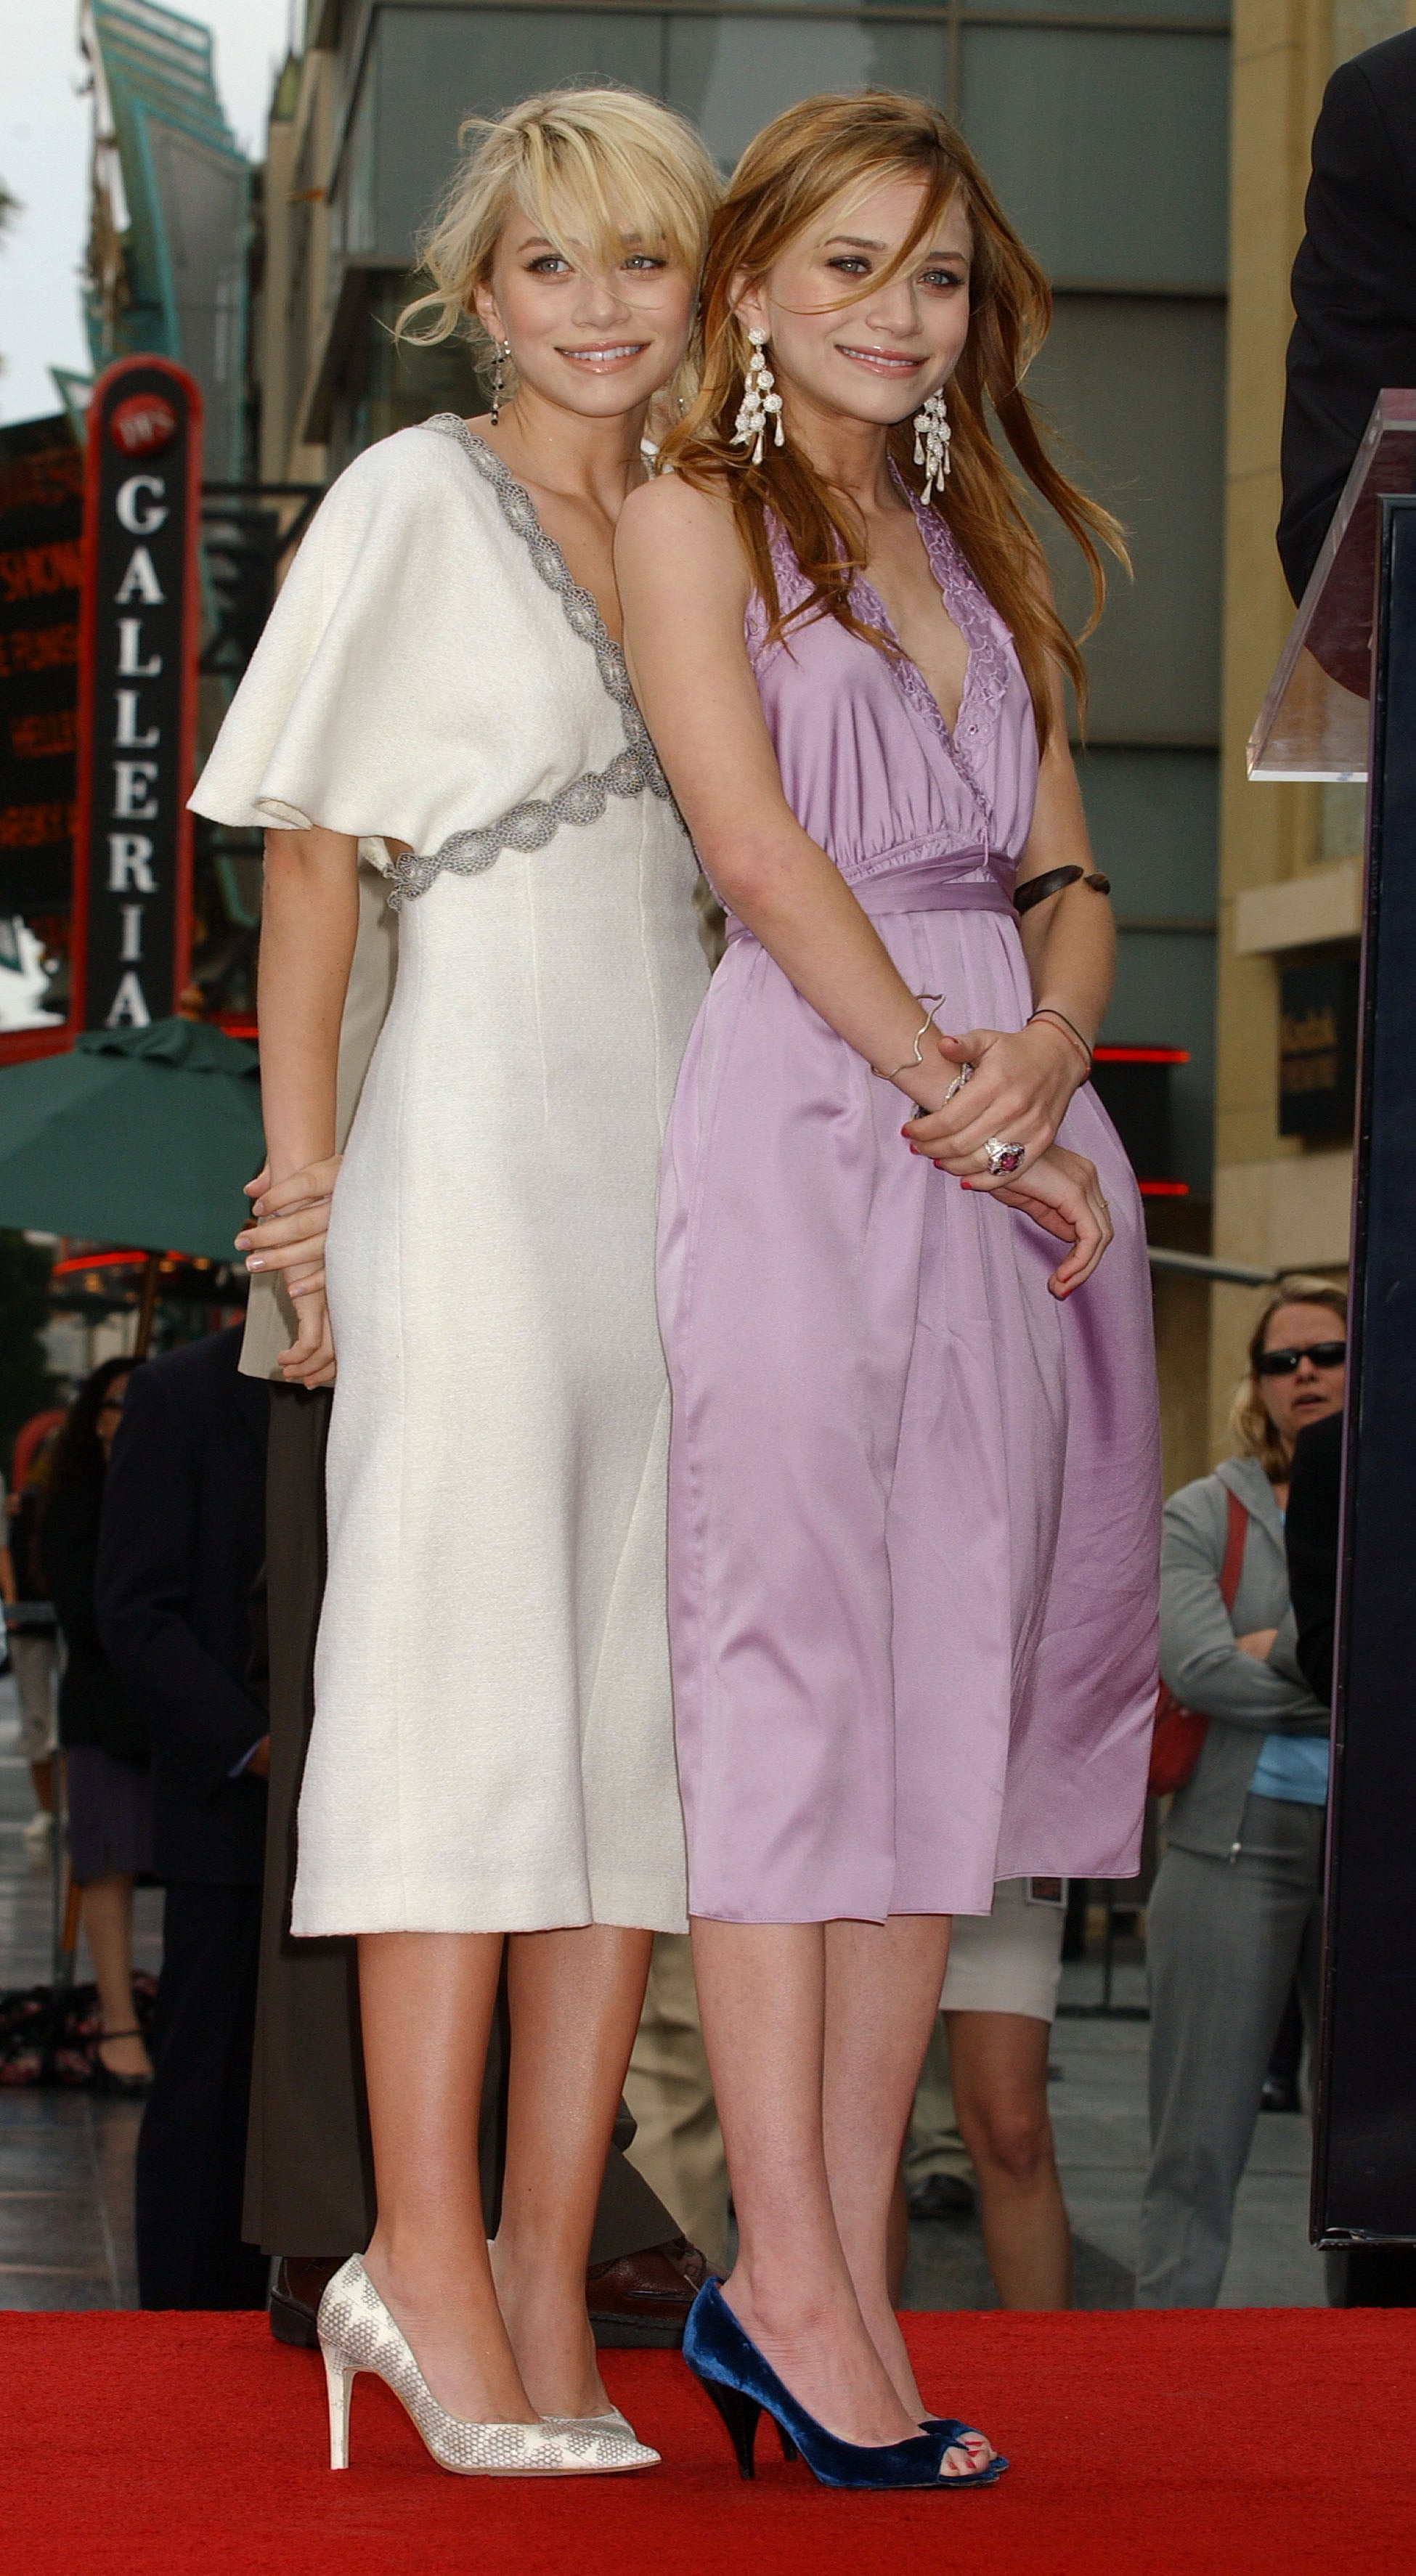 Twinning combo: The honorees looked picture perfect in silky pastel dresses and prim pumps while accepting their star on the Hollywood Walk of Fame in 2003.  Ashley wore a white flutter-sleeve dress with beaded embellishments and snakeskin pumps. Mary-Kate complemented her lilac halter with navy suede peep-toe pumps and chandelier earrings.